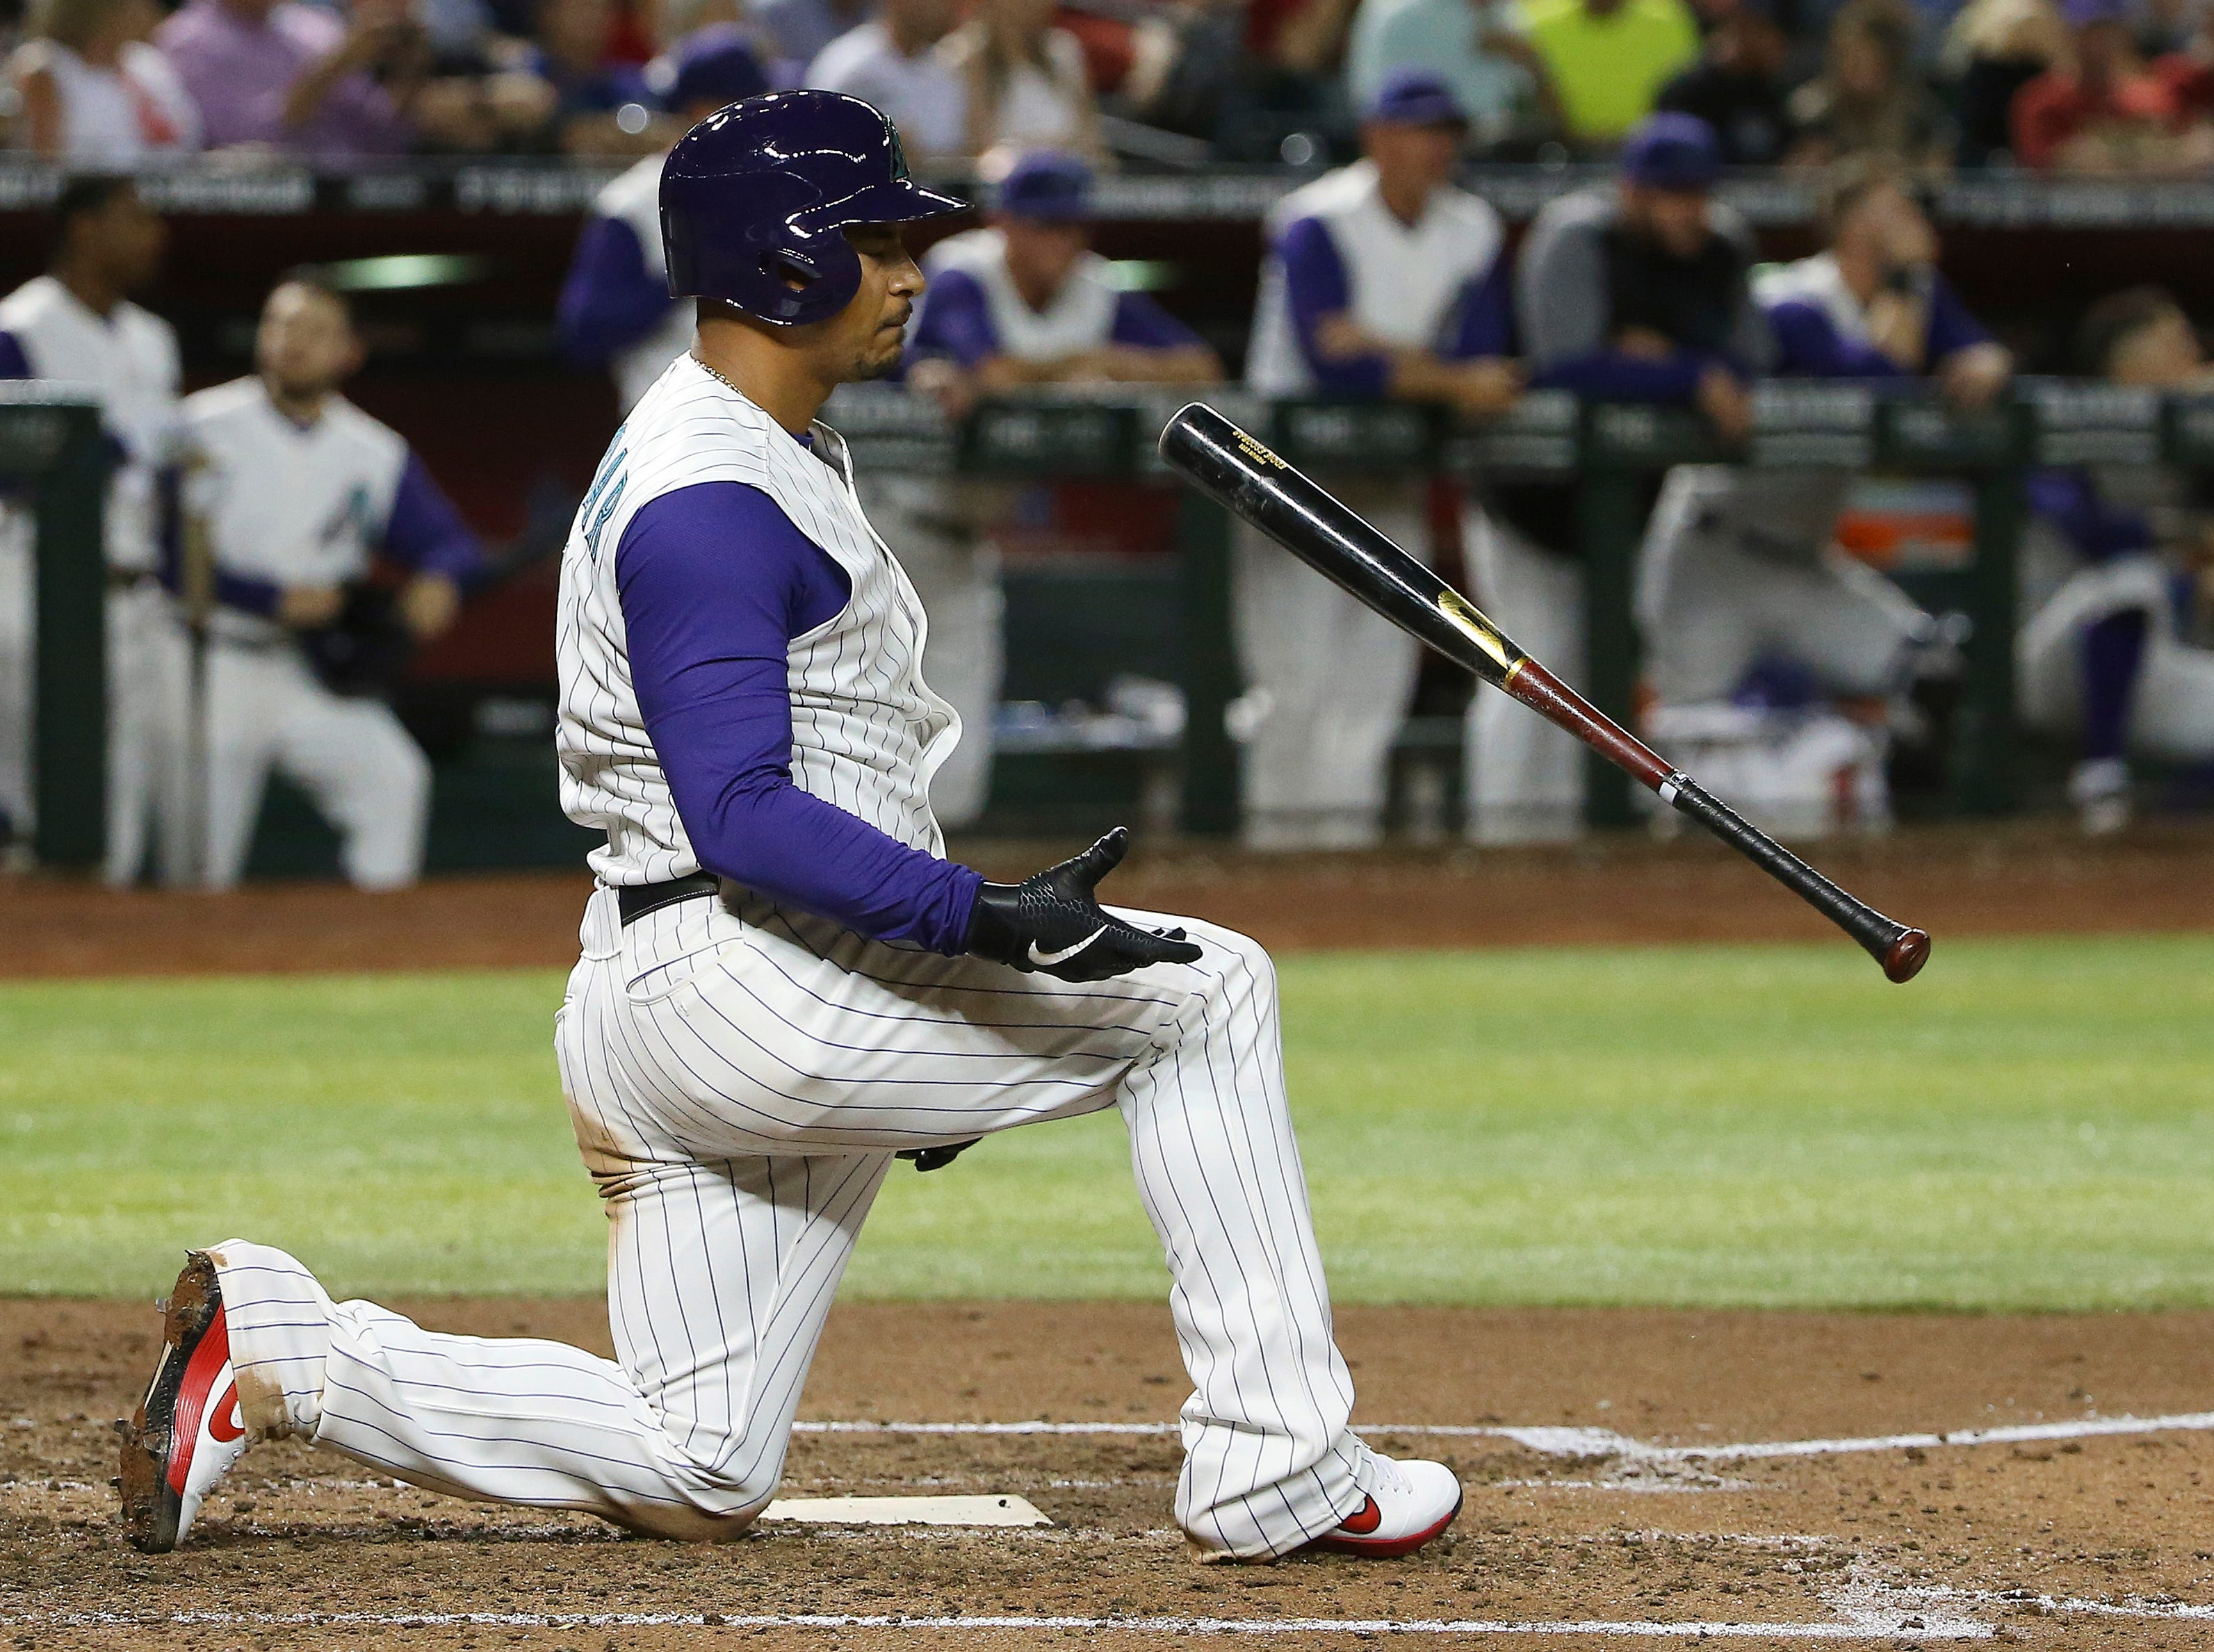 Arizona Diamondbacks' Eduardo Escobar flips his bat in the air after swinging and missing on a second strike against the Atlanta Braves during the fifth inning of a baseball game Thursday, May 9, 2019, in Phoenix. (AP Photo/Ross D. Franklin)